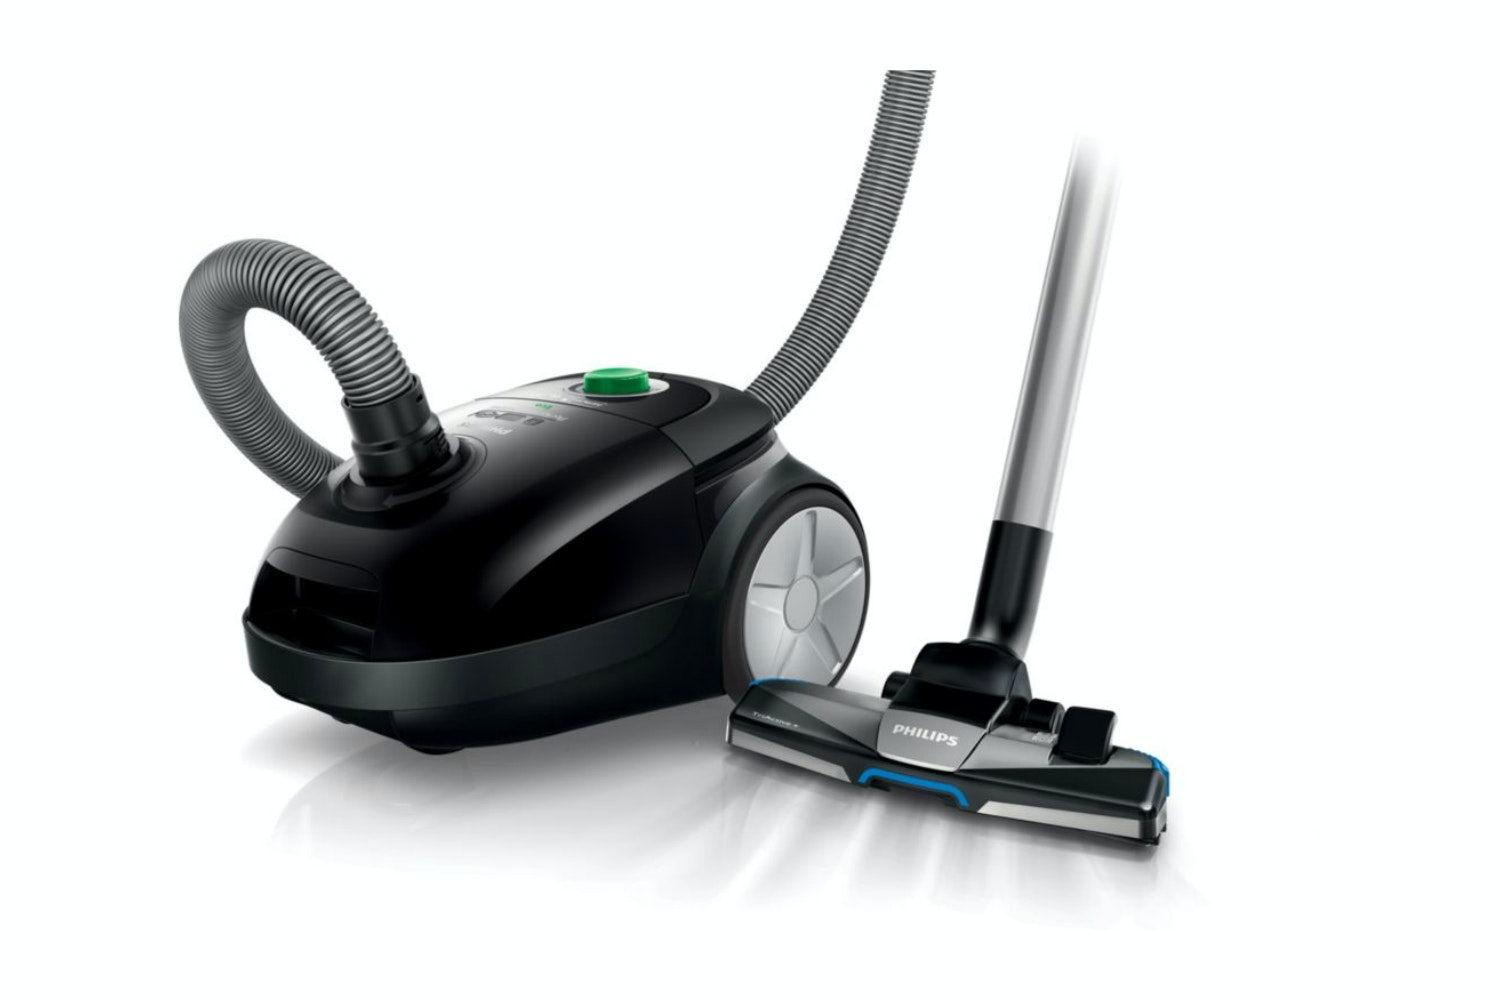 Philips Performer Active Vacuum Cleaner